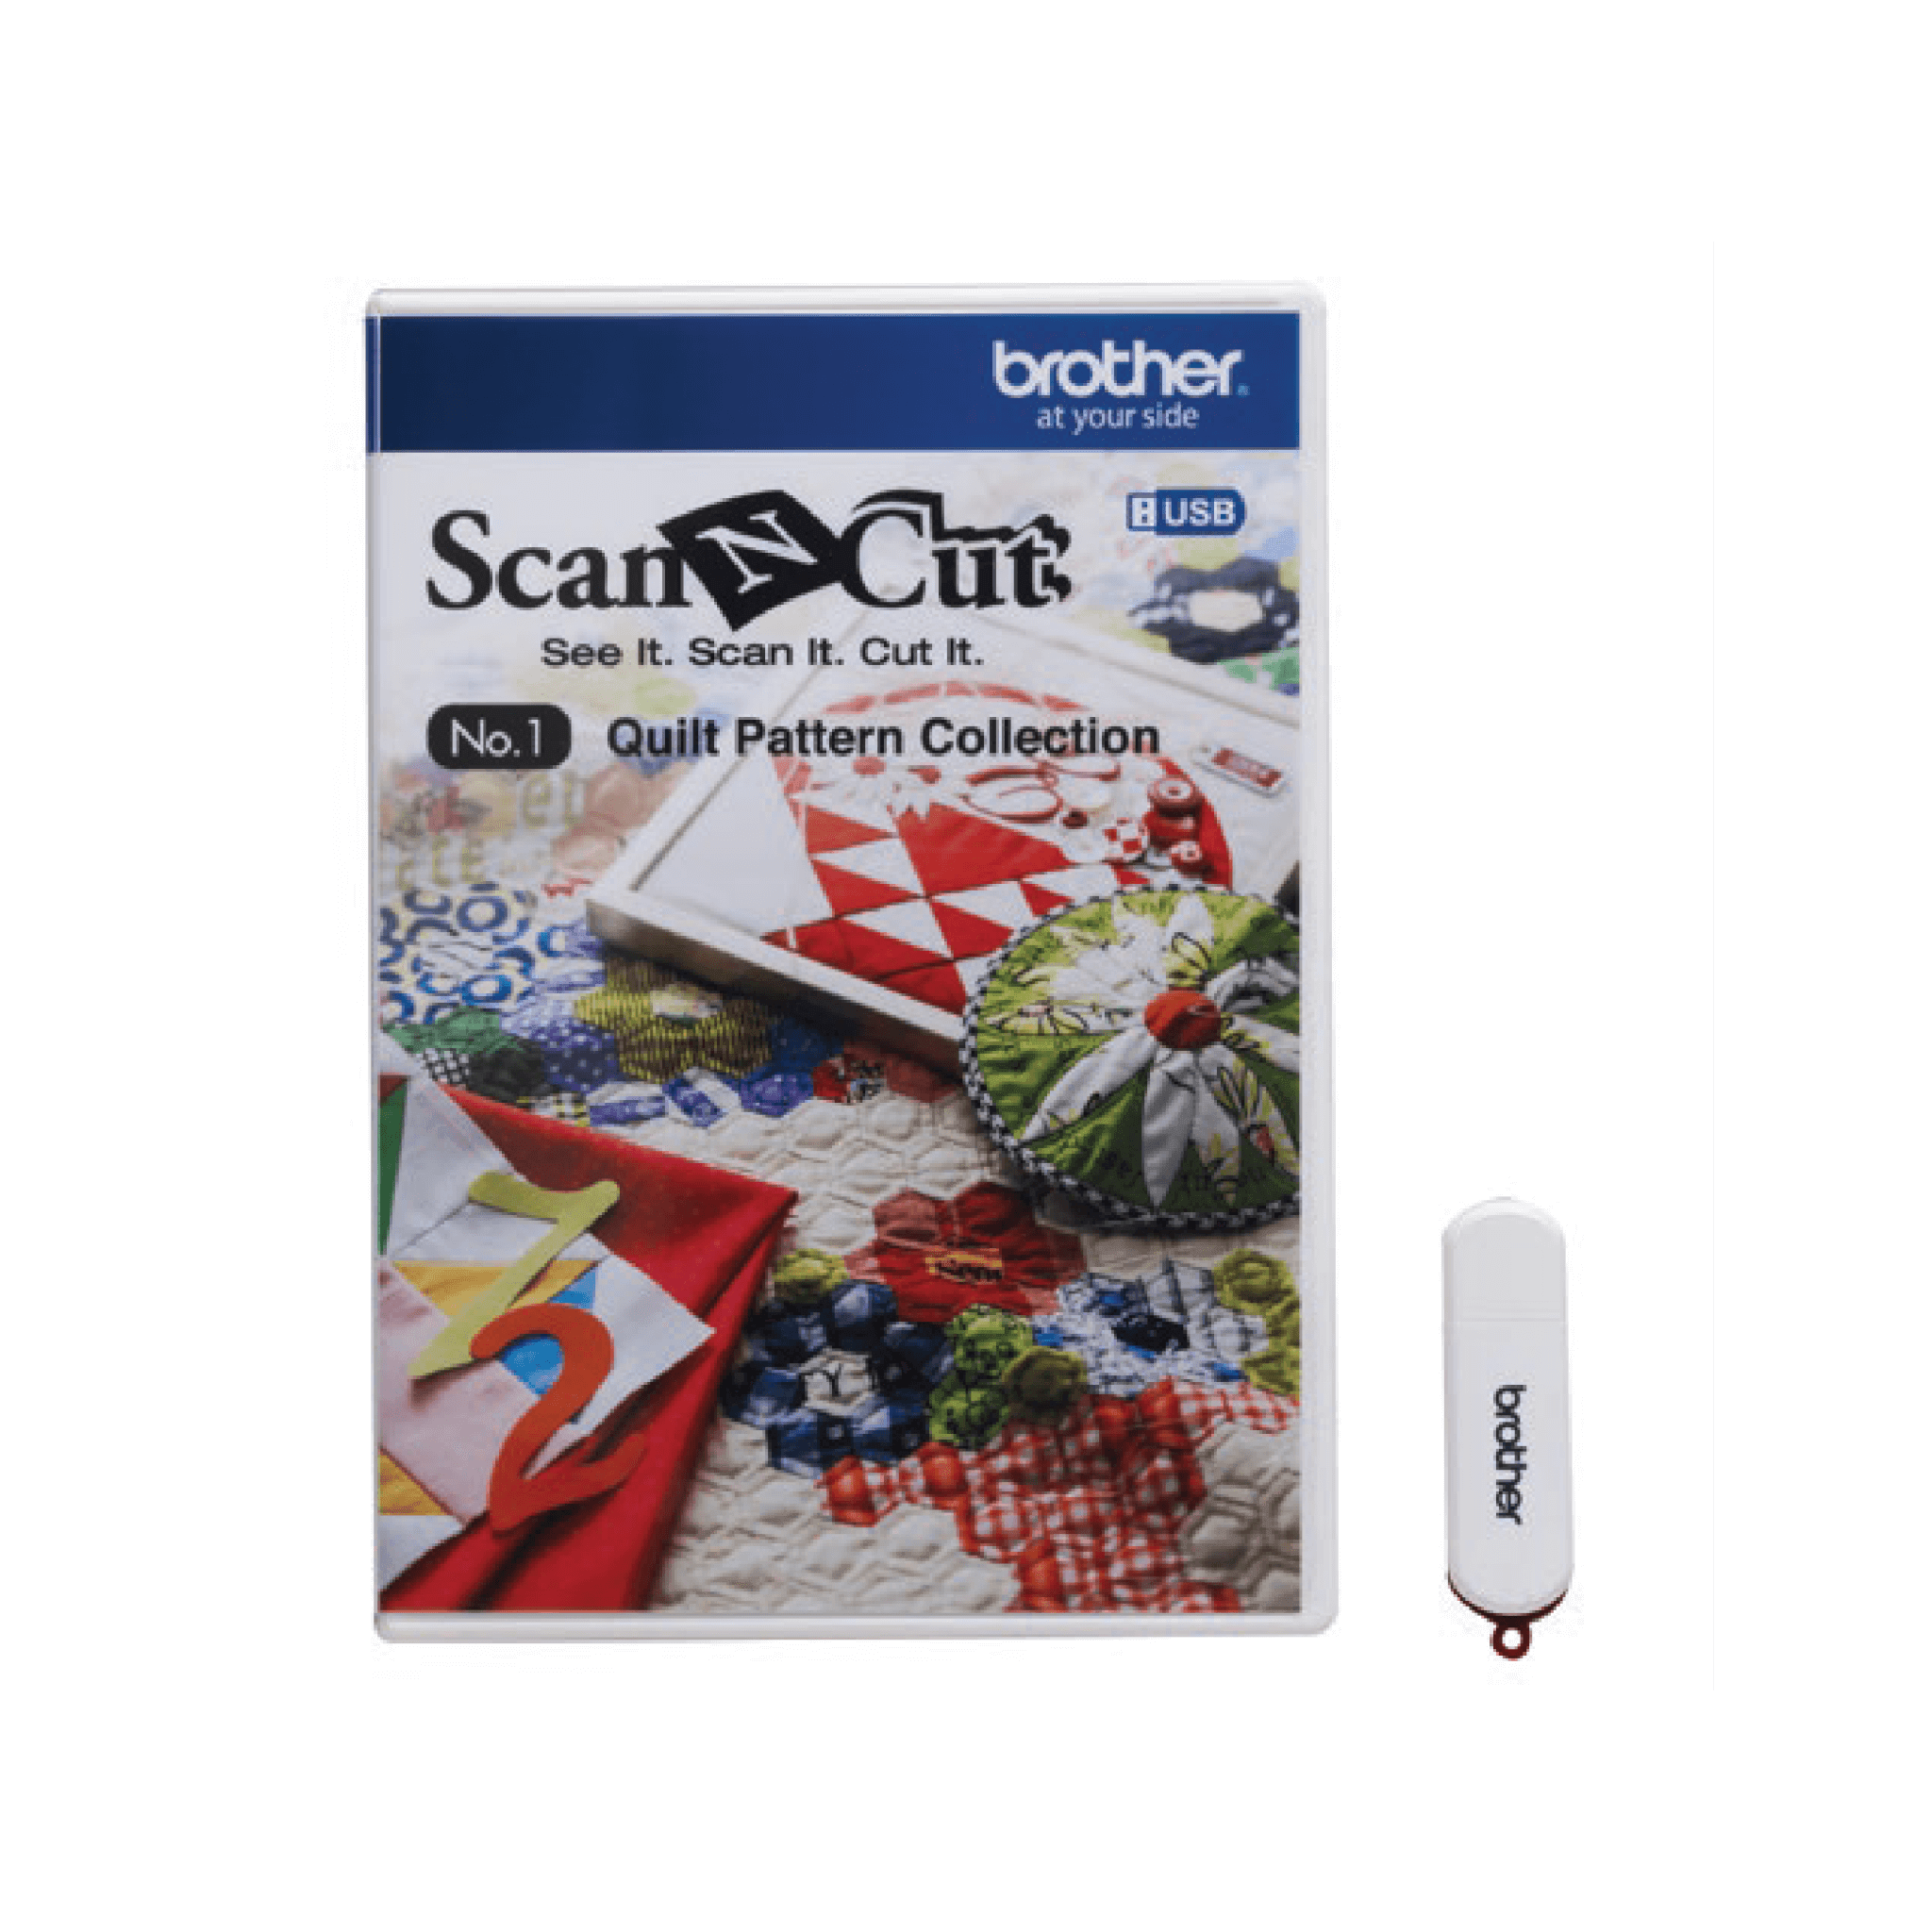 Scanncut Quilt Pattern Collection